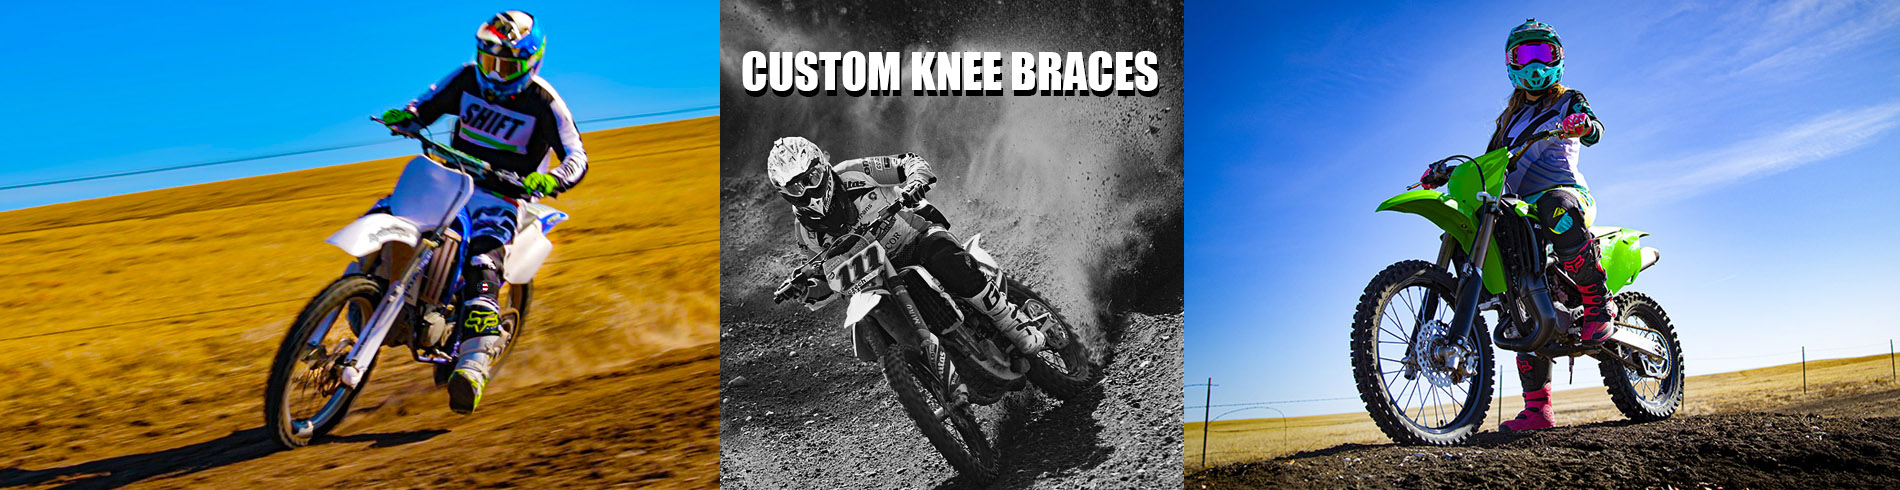 Knee Braces for Motorcylists